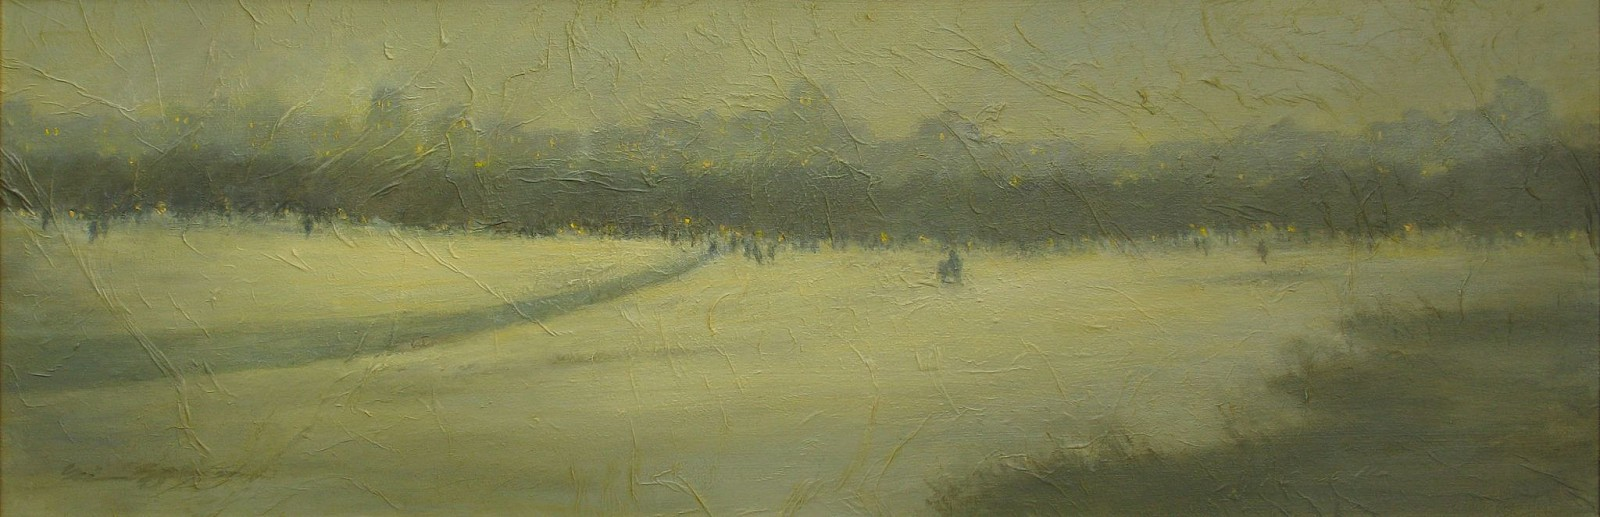 Nina Maguire, Central Park Winter, 2011 2011, acrylic on board with seikishu rice paper